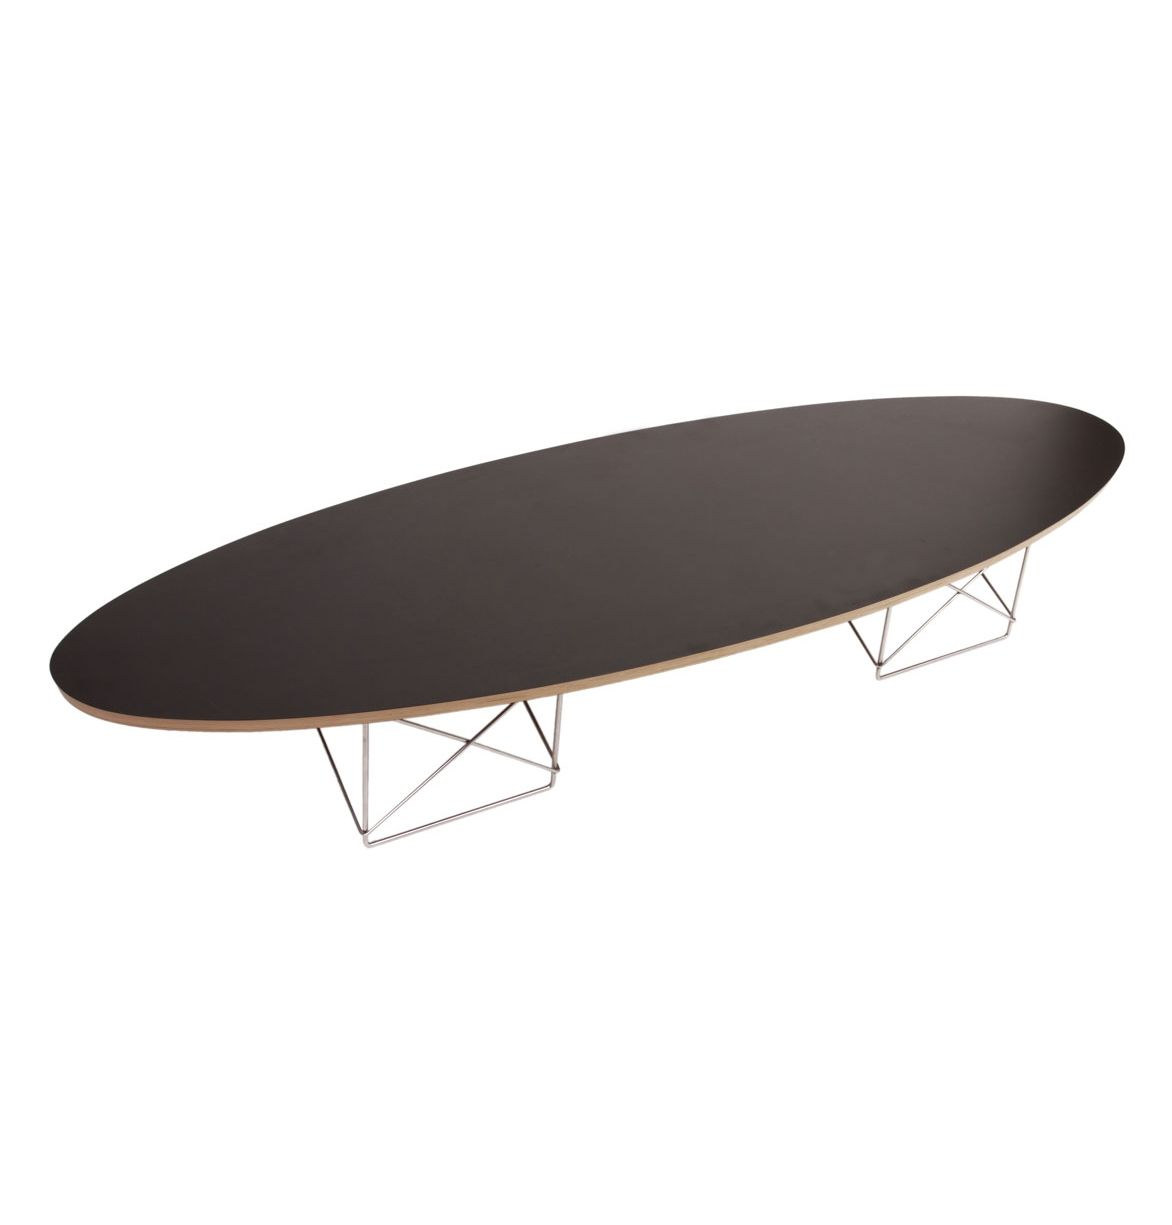 Replica Eames Elliptical Coffee Table by Charles and Ray Eames